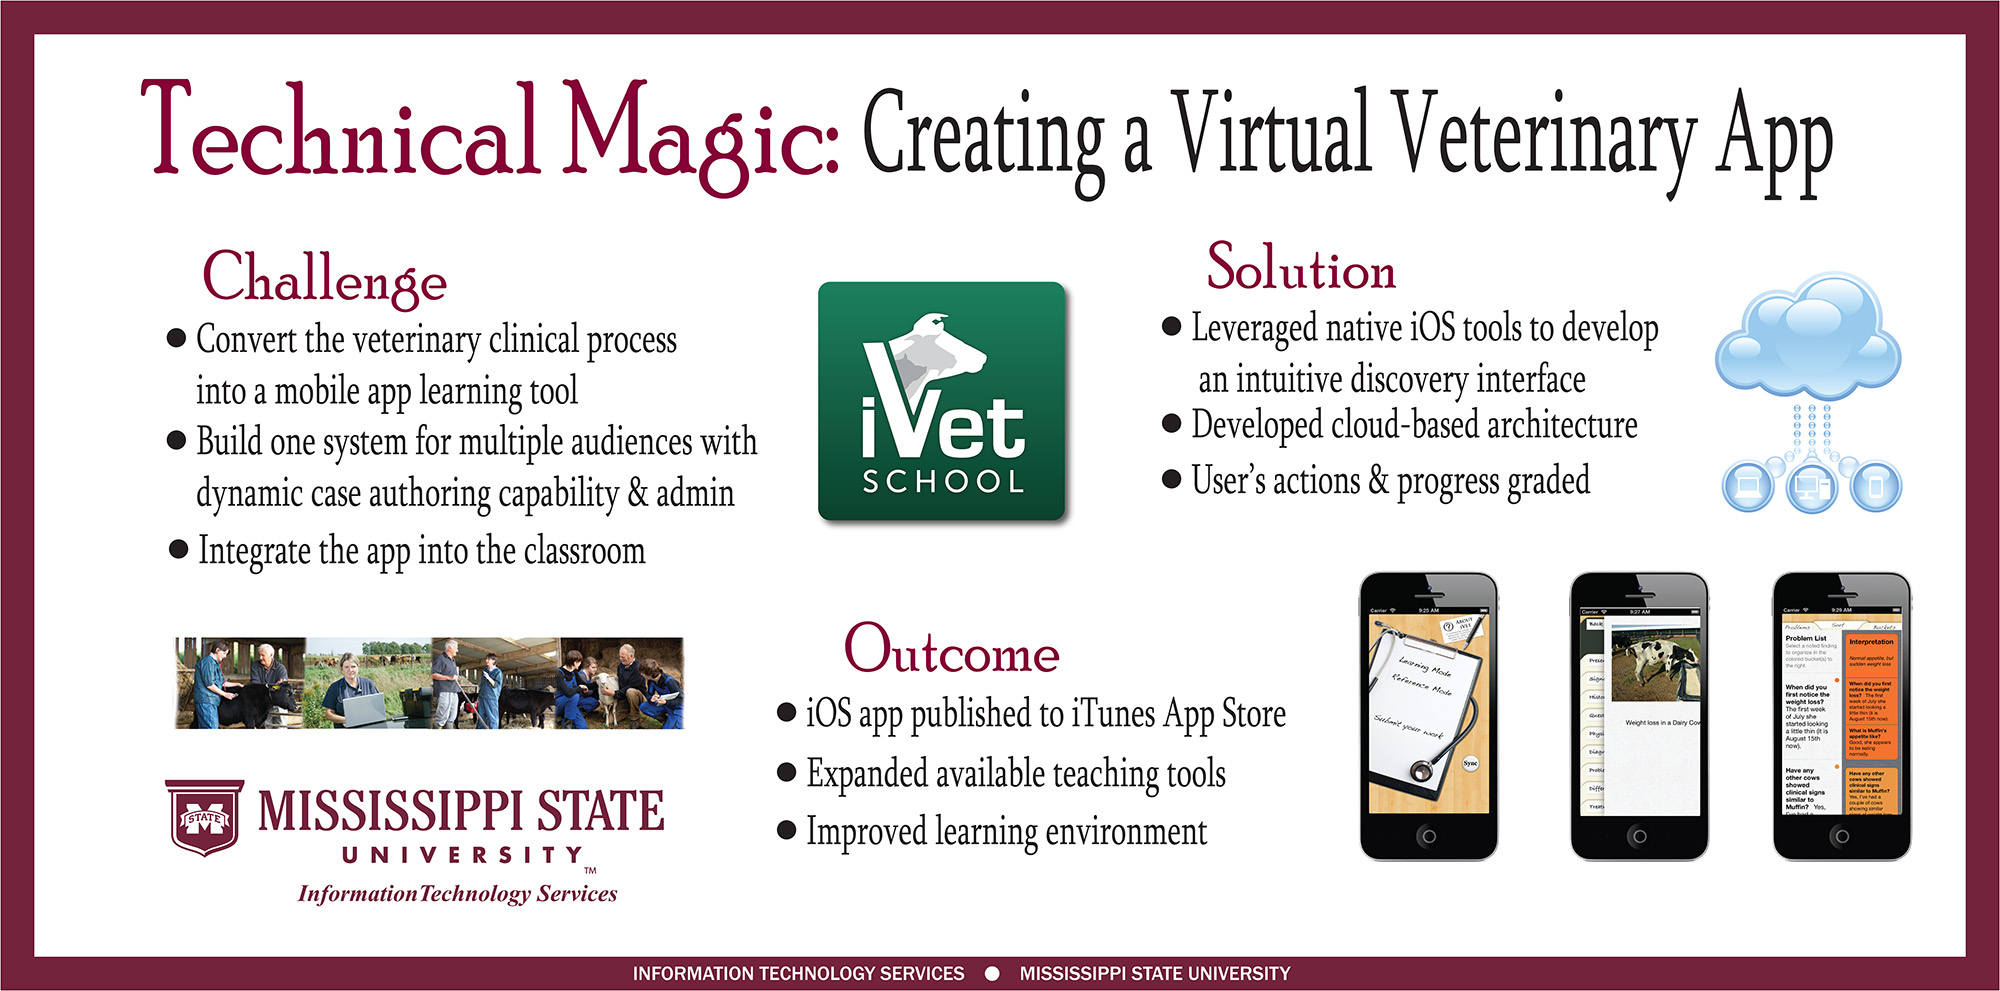 Technical Magic: Creating a Virtual Veterinarian App | EDUCAUSE